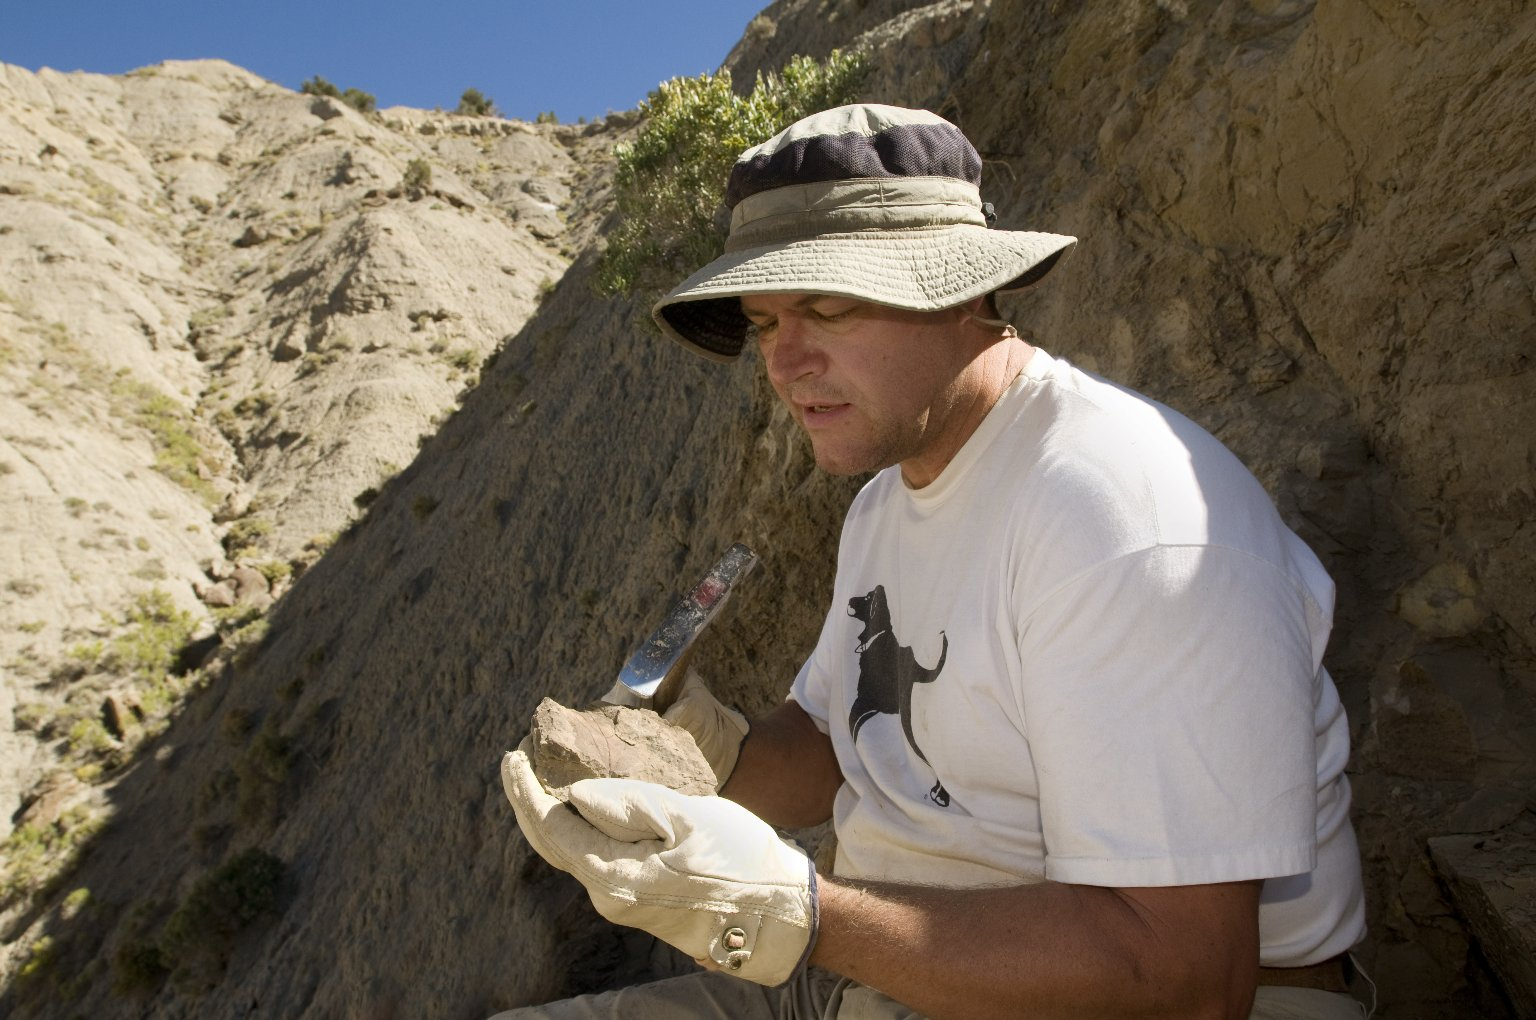 Dr. Kirk Johnson, DMNS Vice President of Research and Collections and Chief Curator, examines a specimen on the Kaiparowits Plateau.